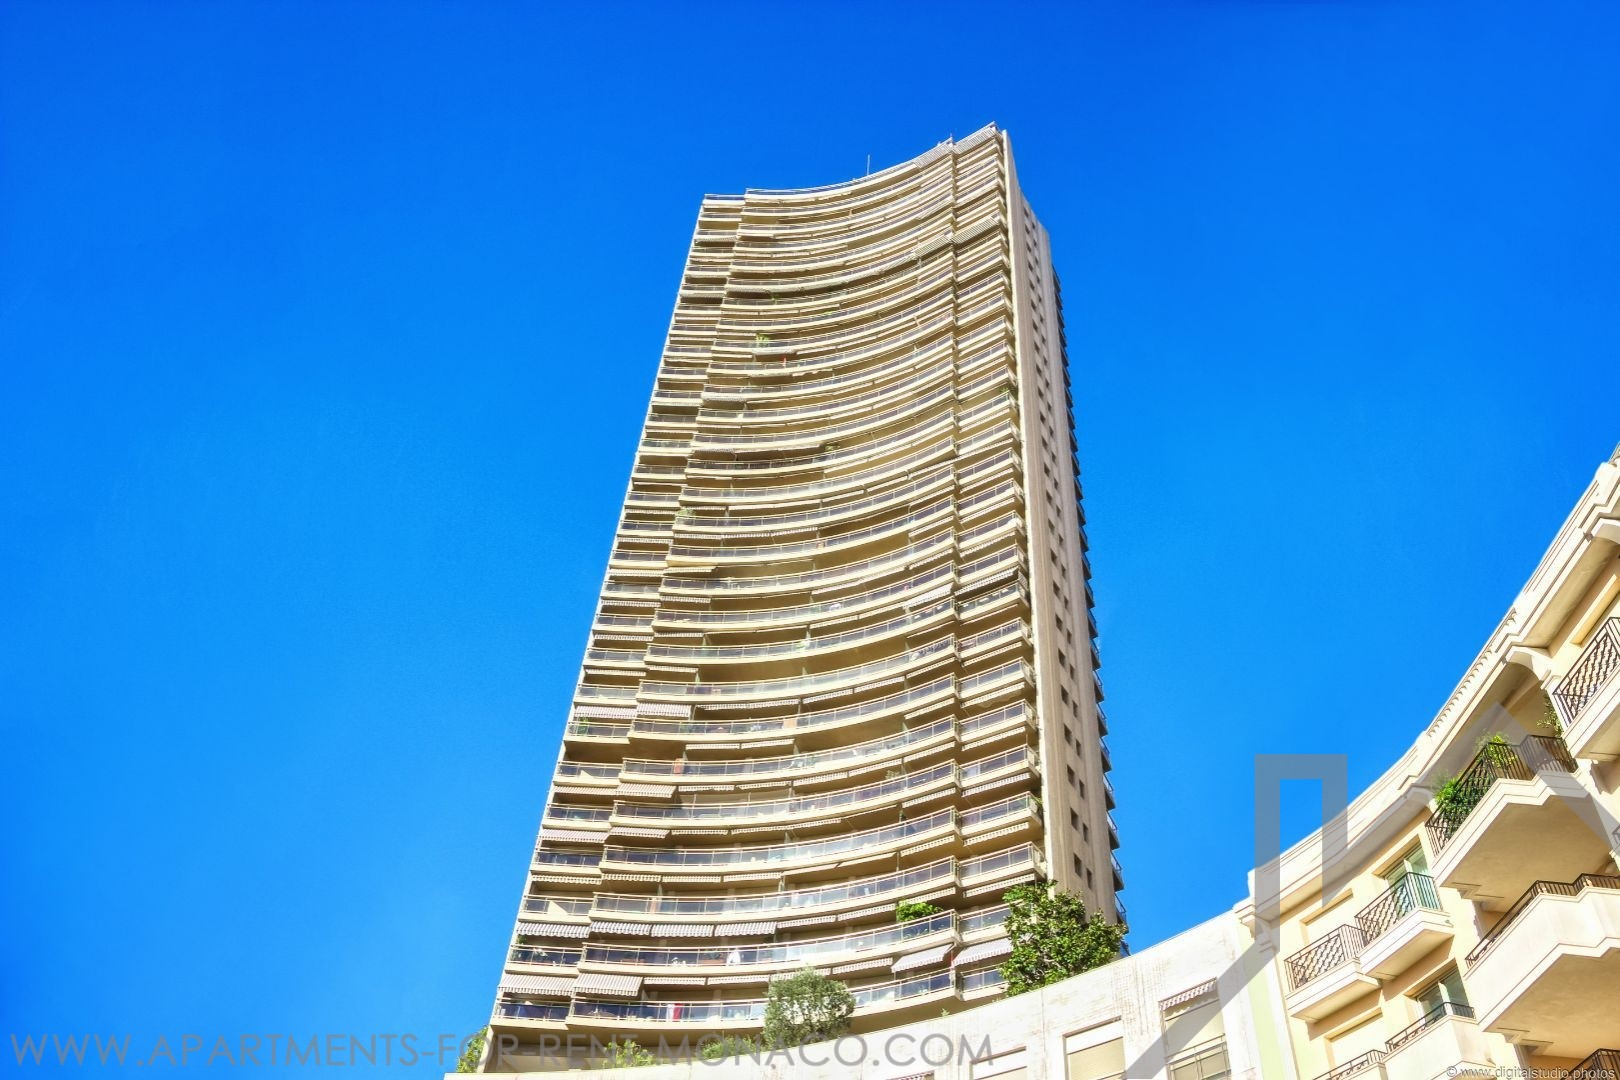 ANNONCIADE - Apartments for rent in Monaco